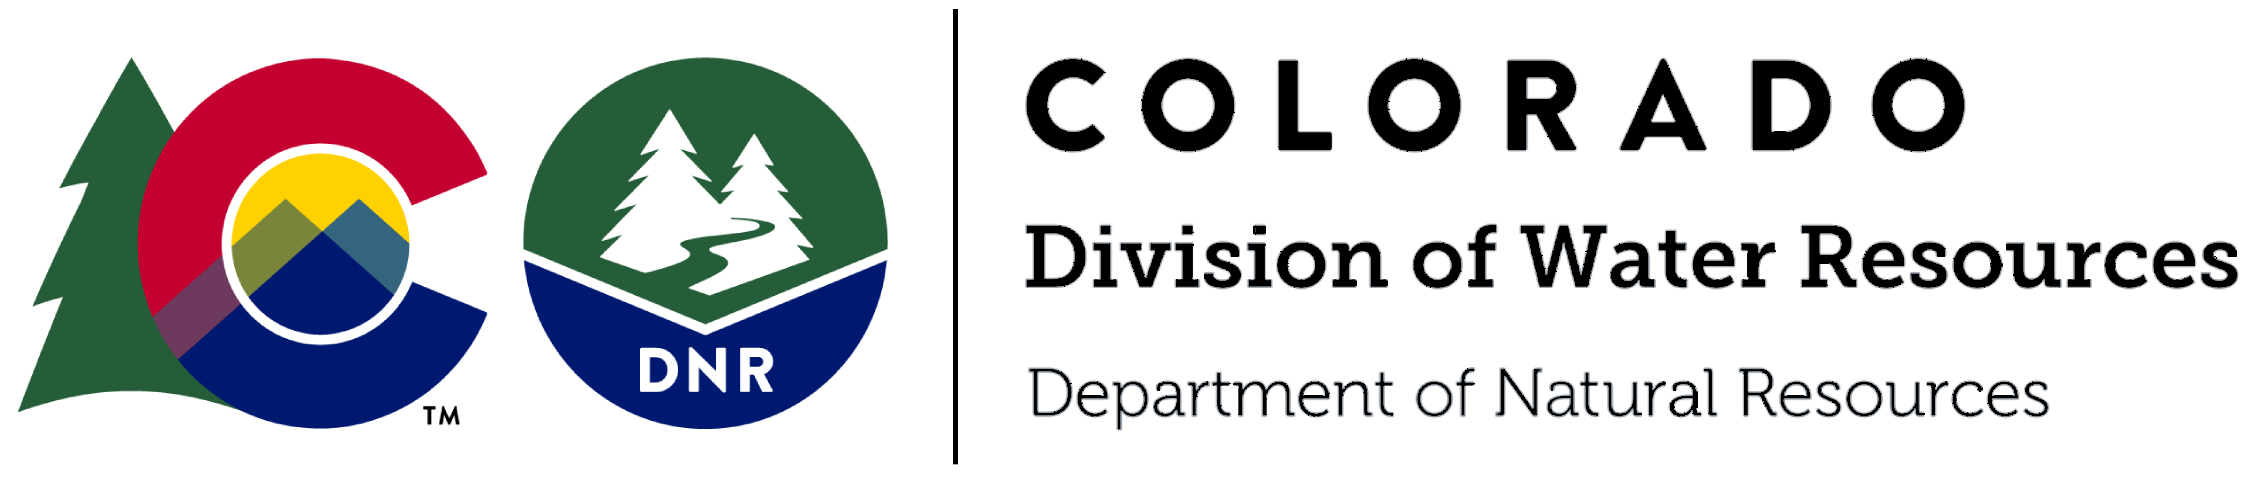 Colorado Division of Water Resources